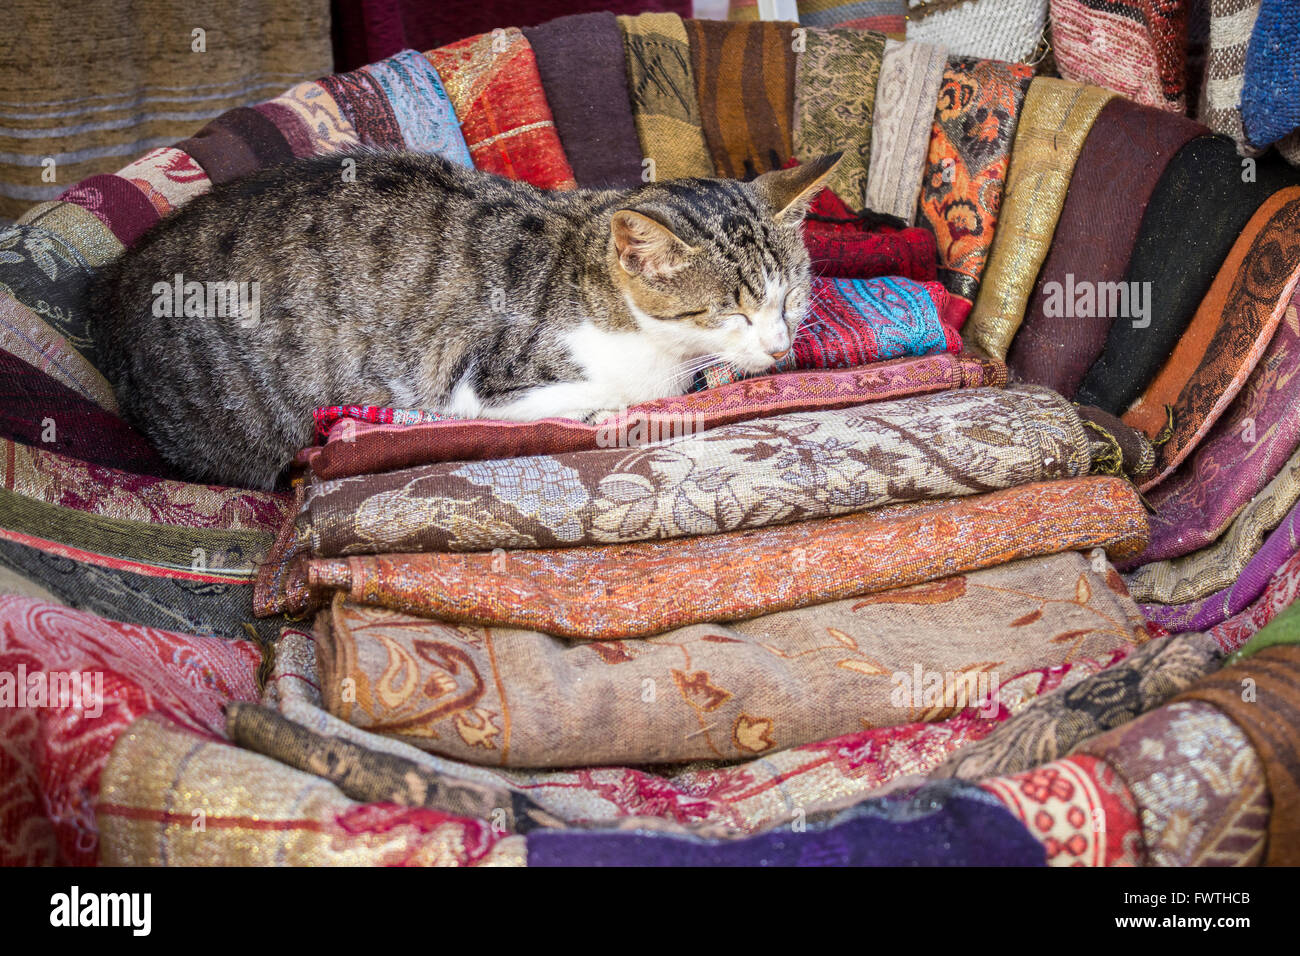 Cat comfortably sleeping in a basket in a fabric shop in Morocco - Stock Image